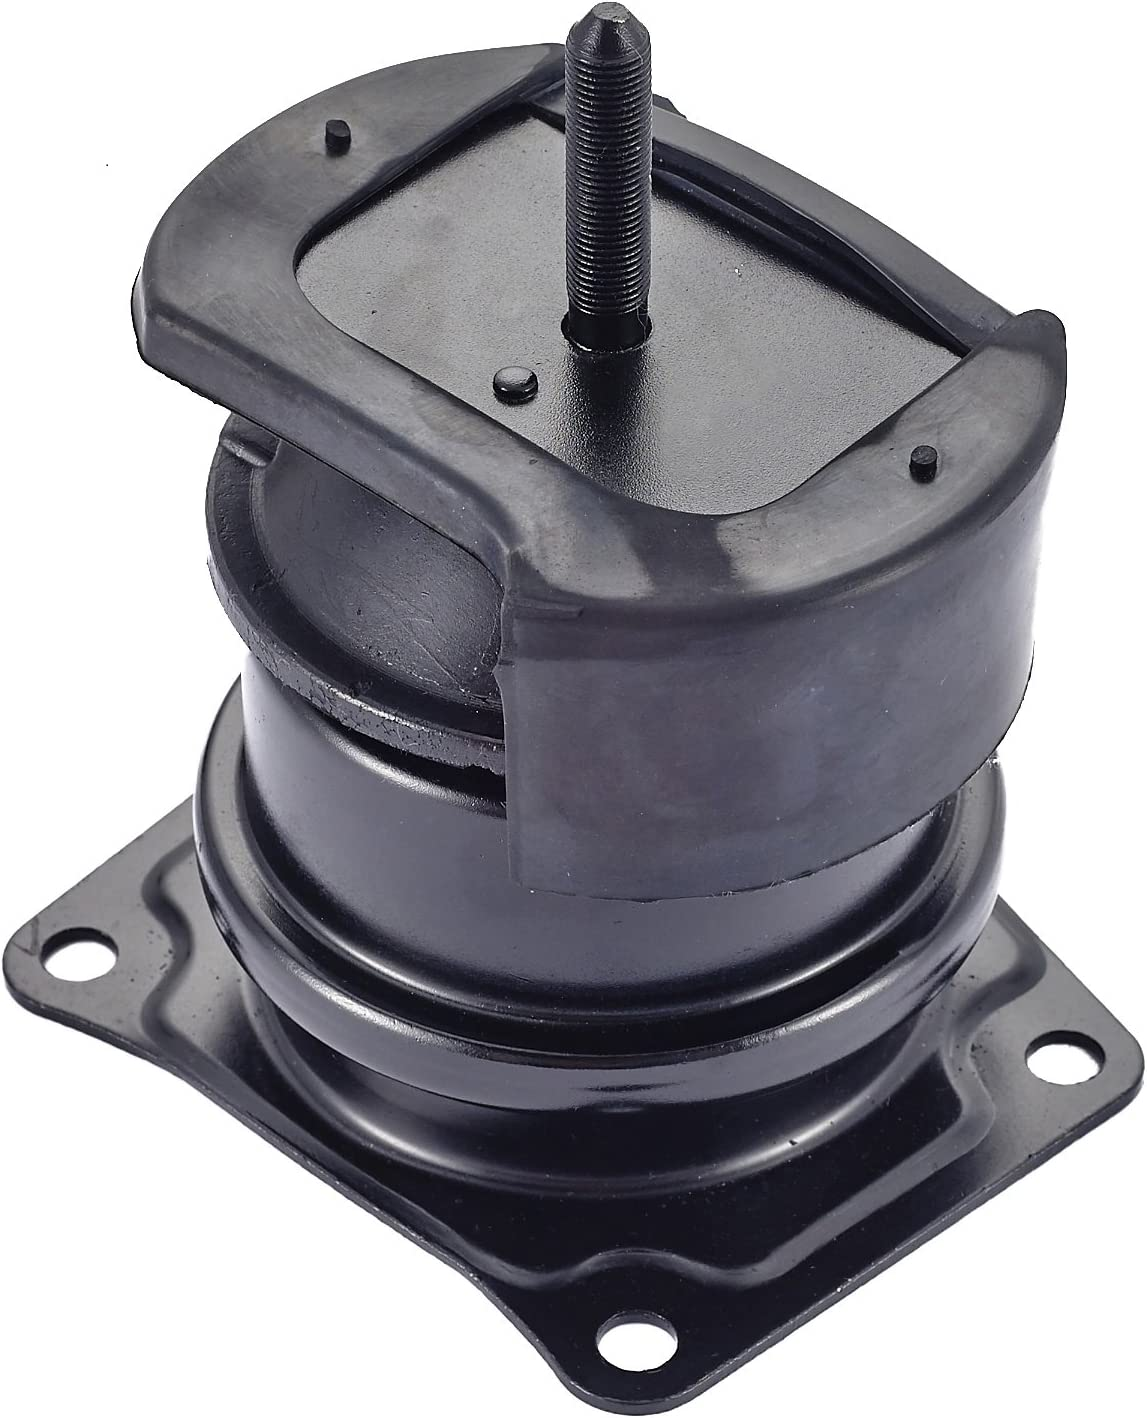 For 2001 Honda Accord V6 3.0 Engine Mount